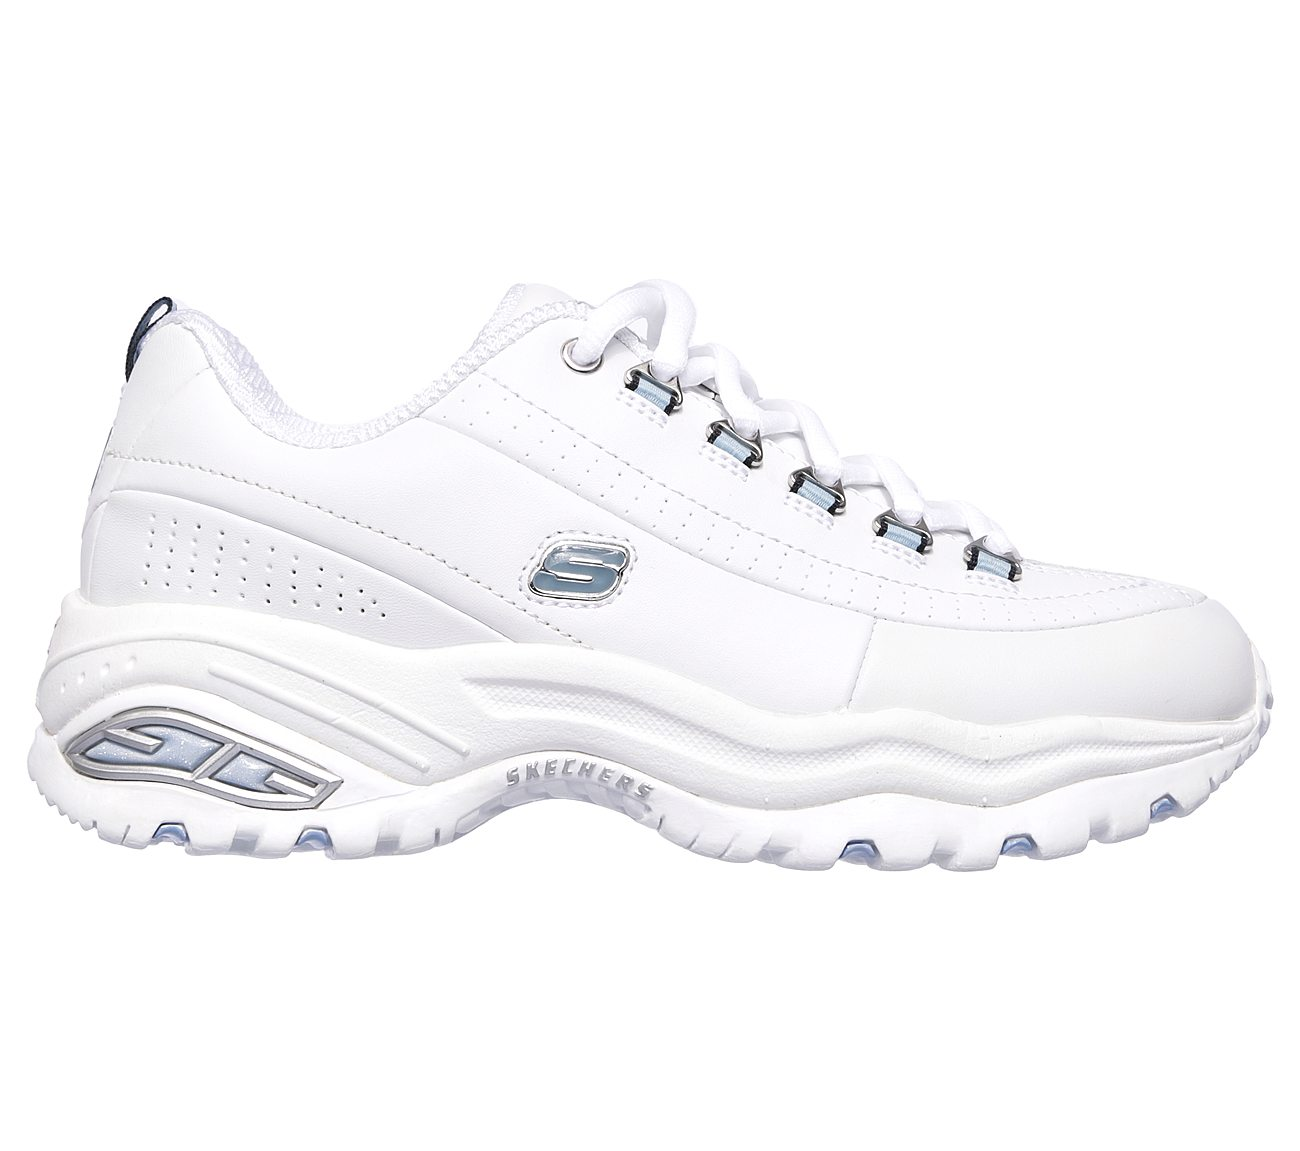 cheap online countdown package Skechers Premium Seeing Double ... Women's Shoes outlet geniue stockist gqcWeb9Lf